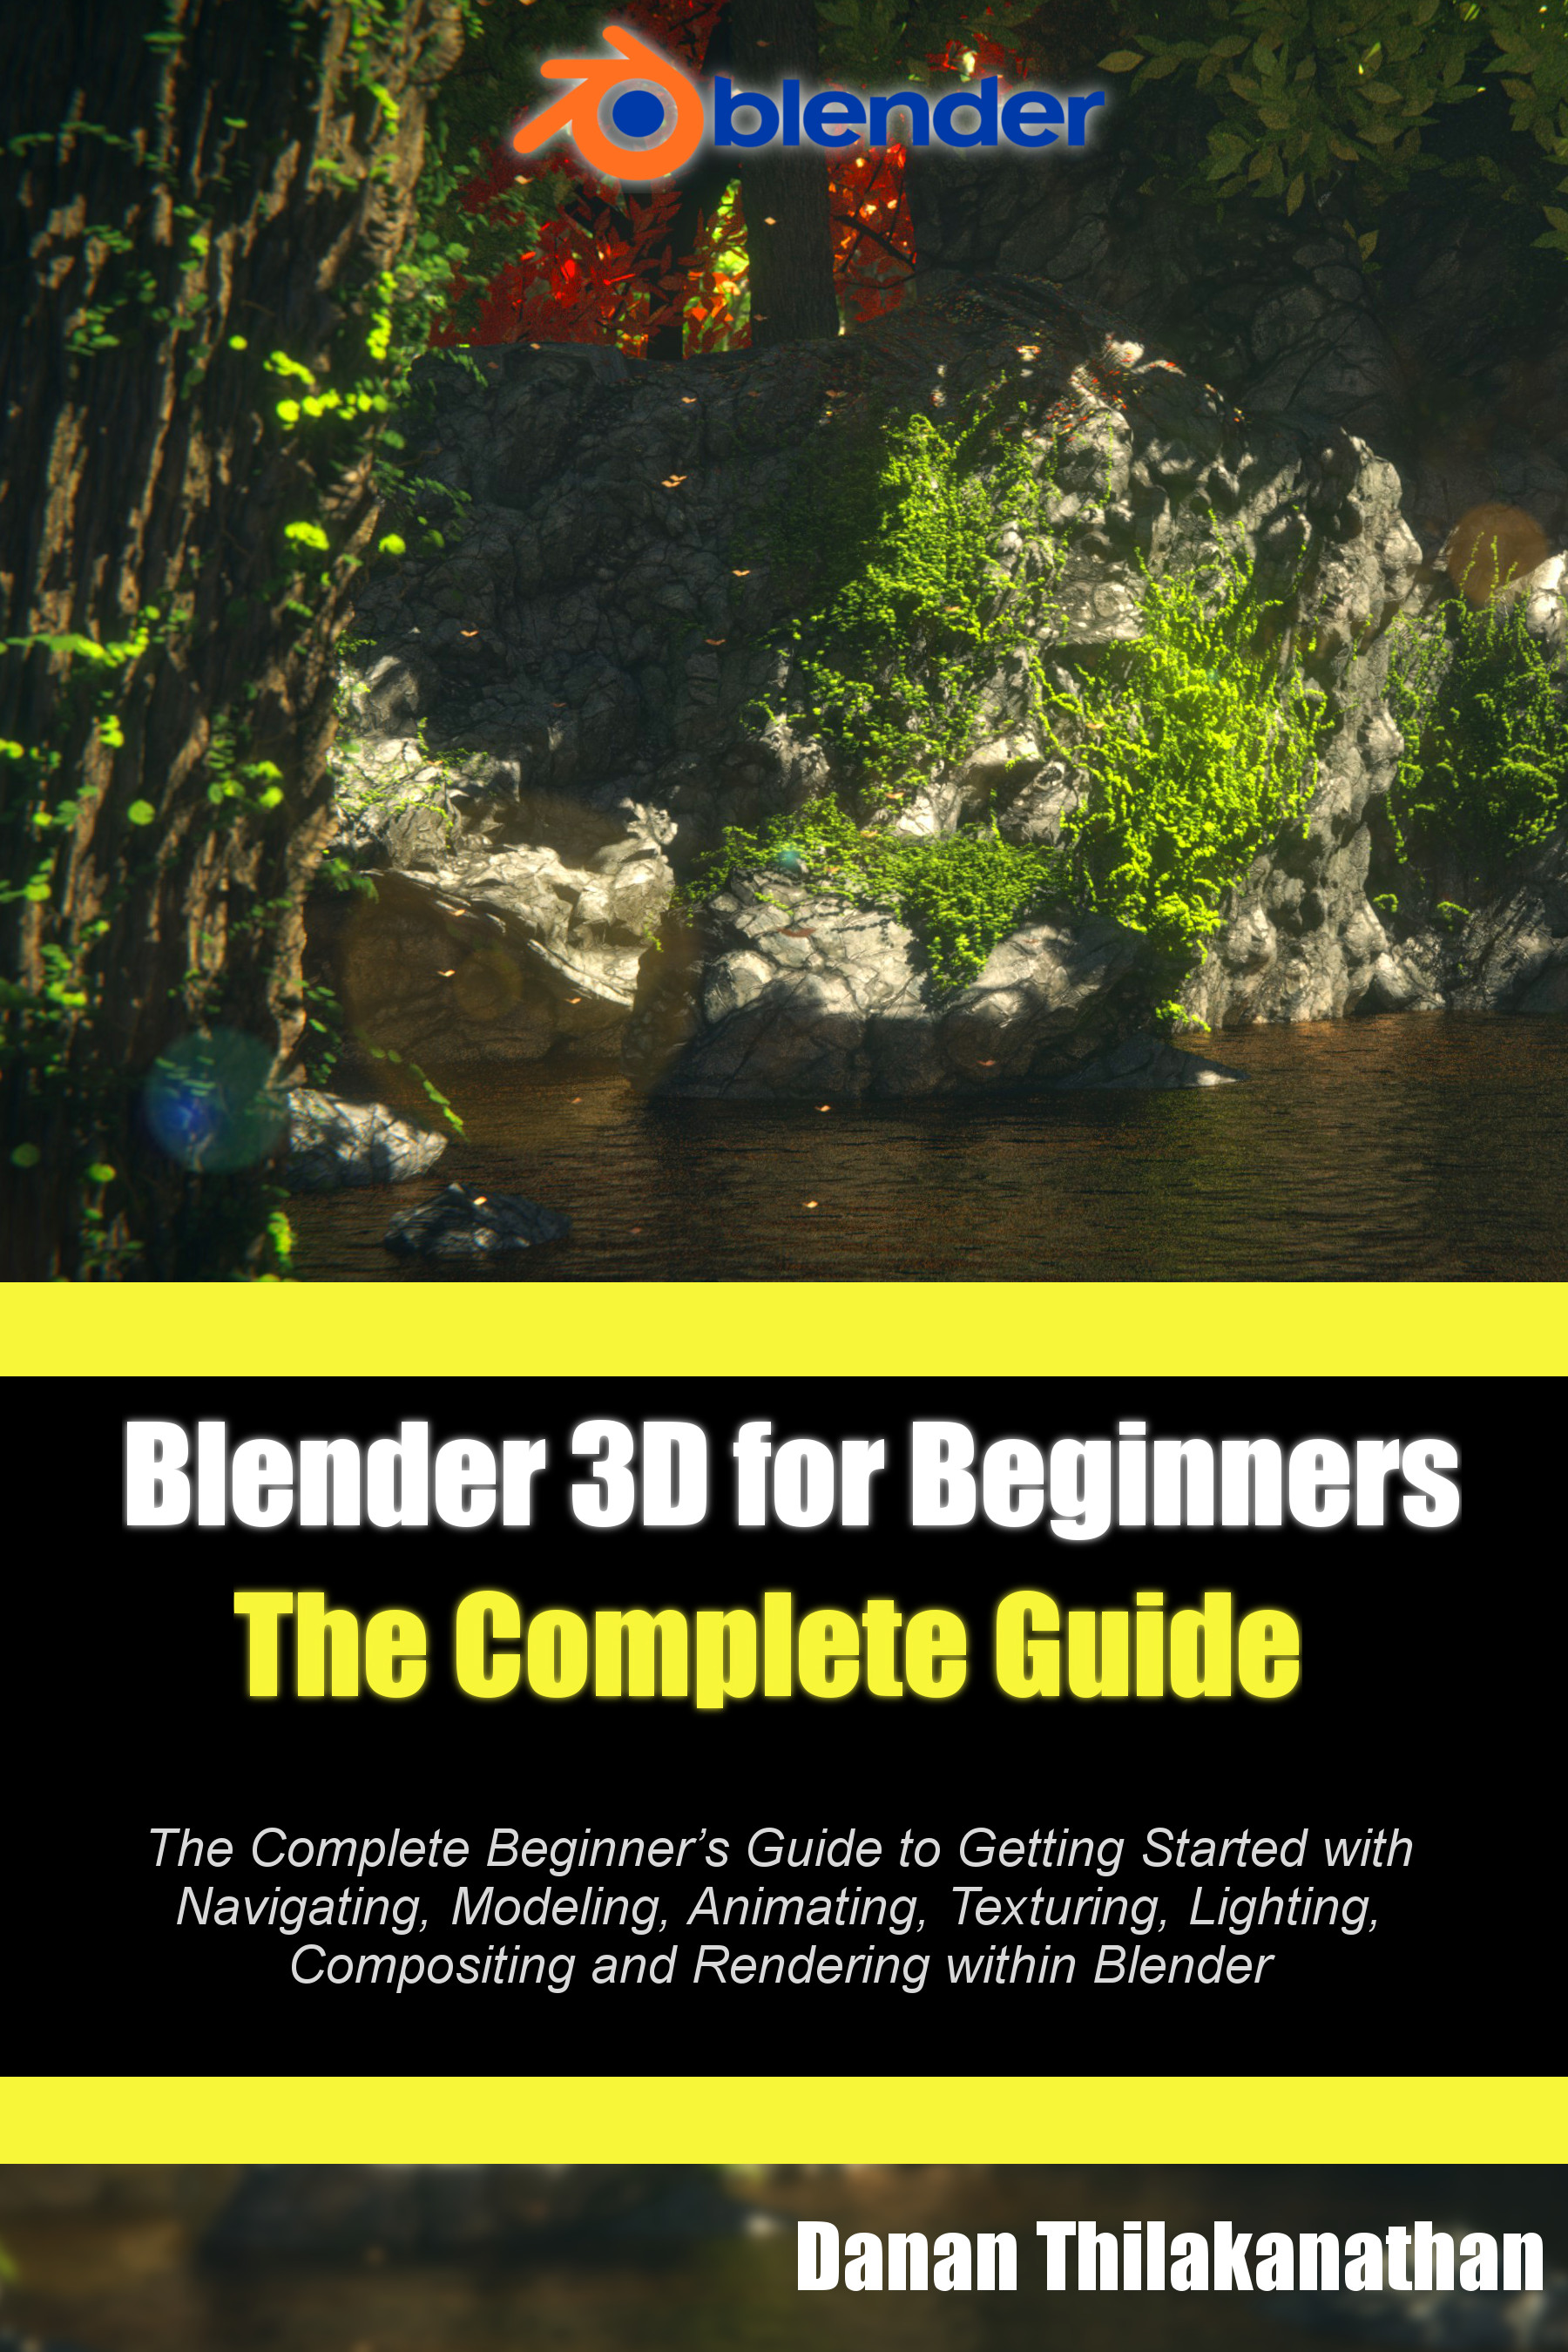 Blender 3D For Beginners: The Complete Guide Book